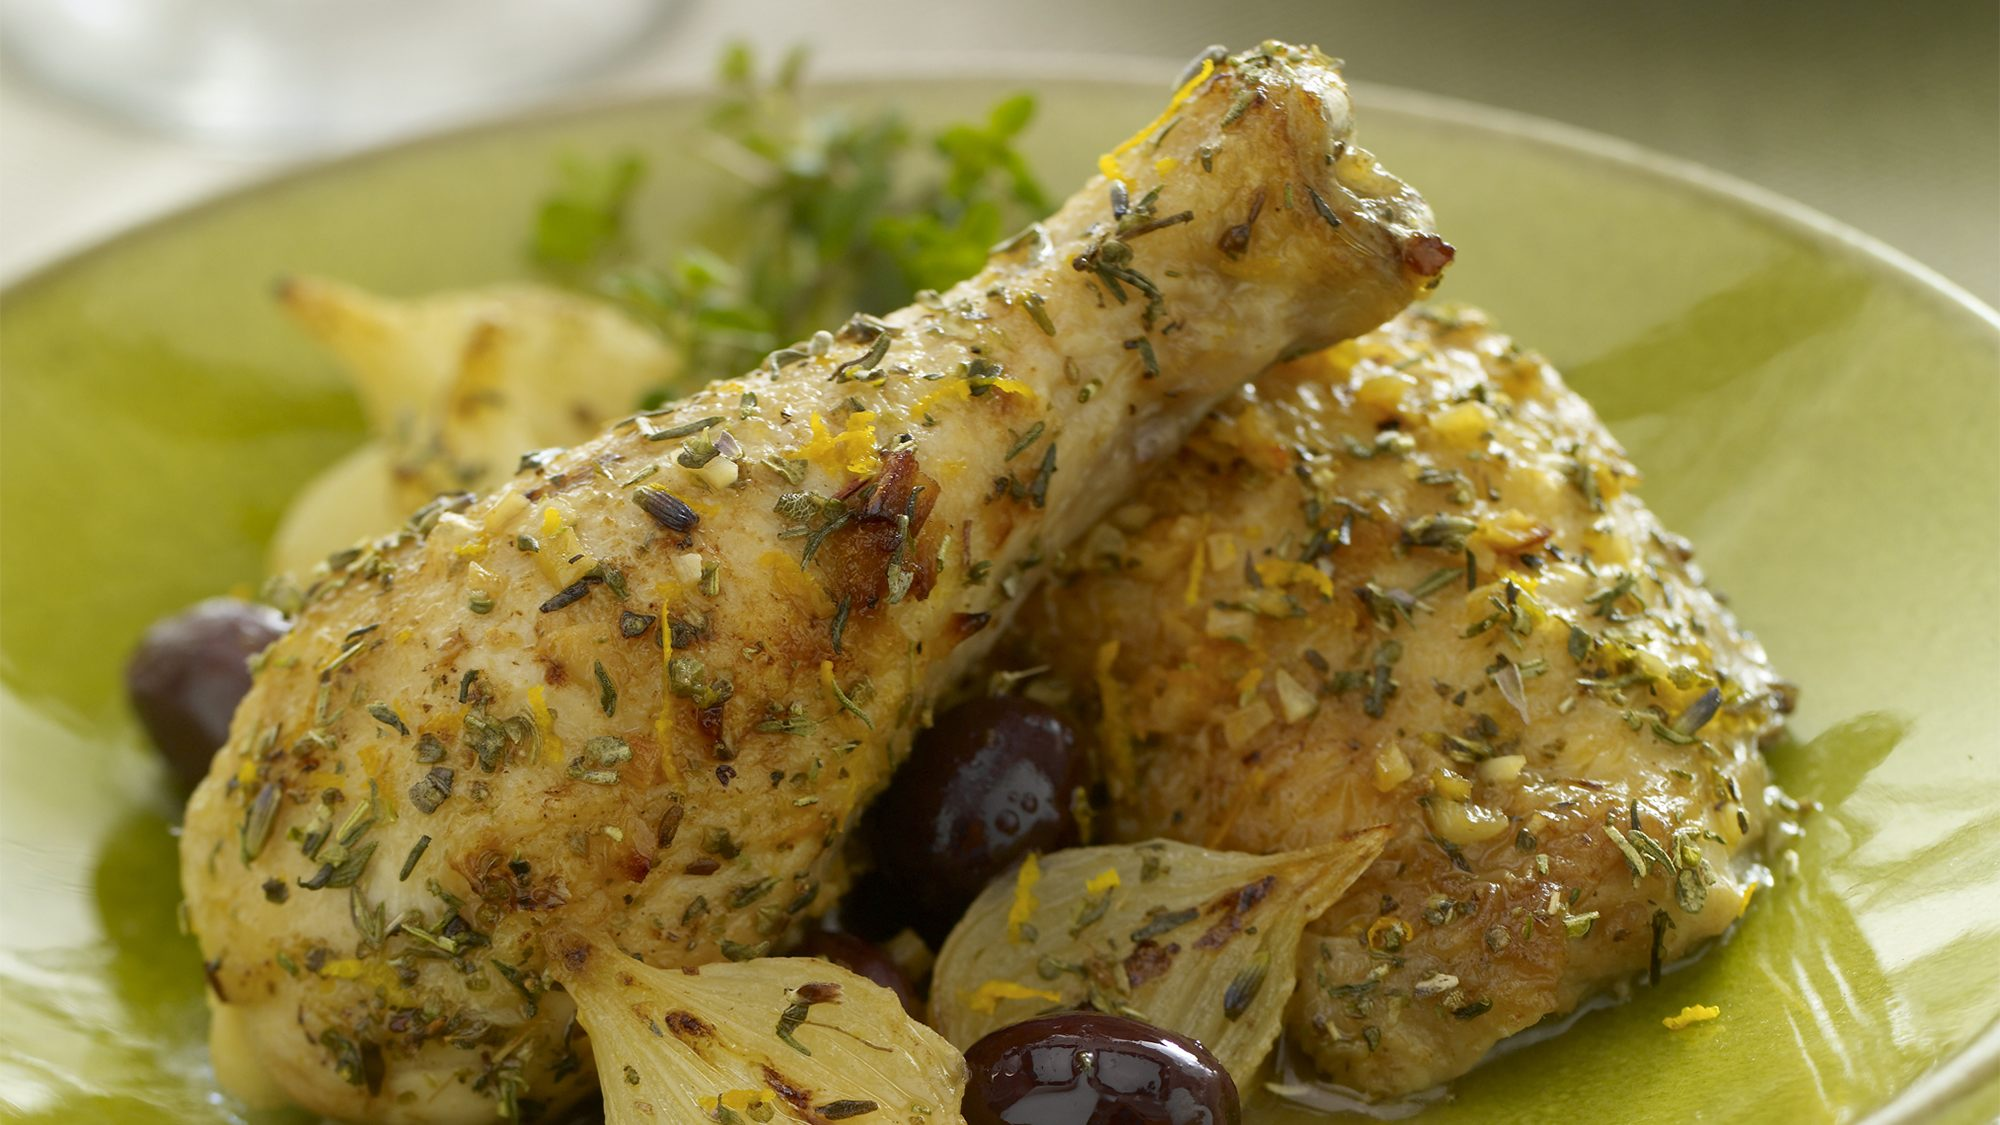 roasted-chicken-with-olives-and-provencal-herbs.jpg